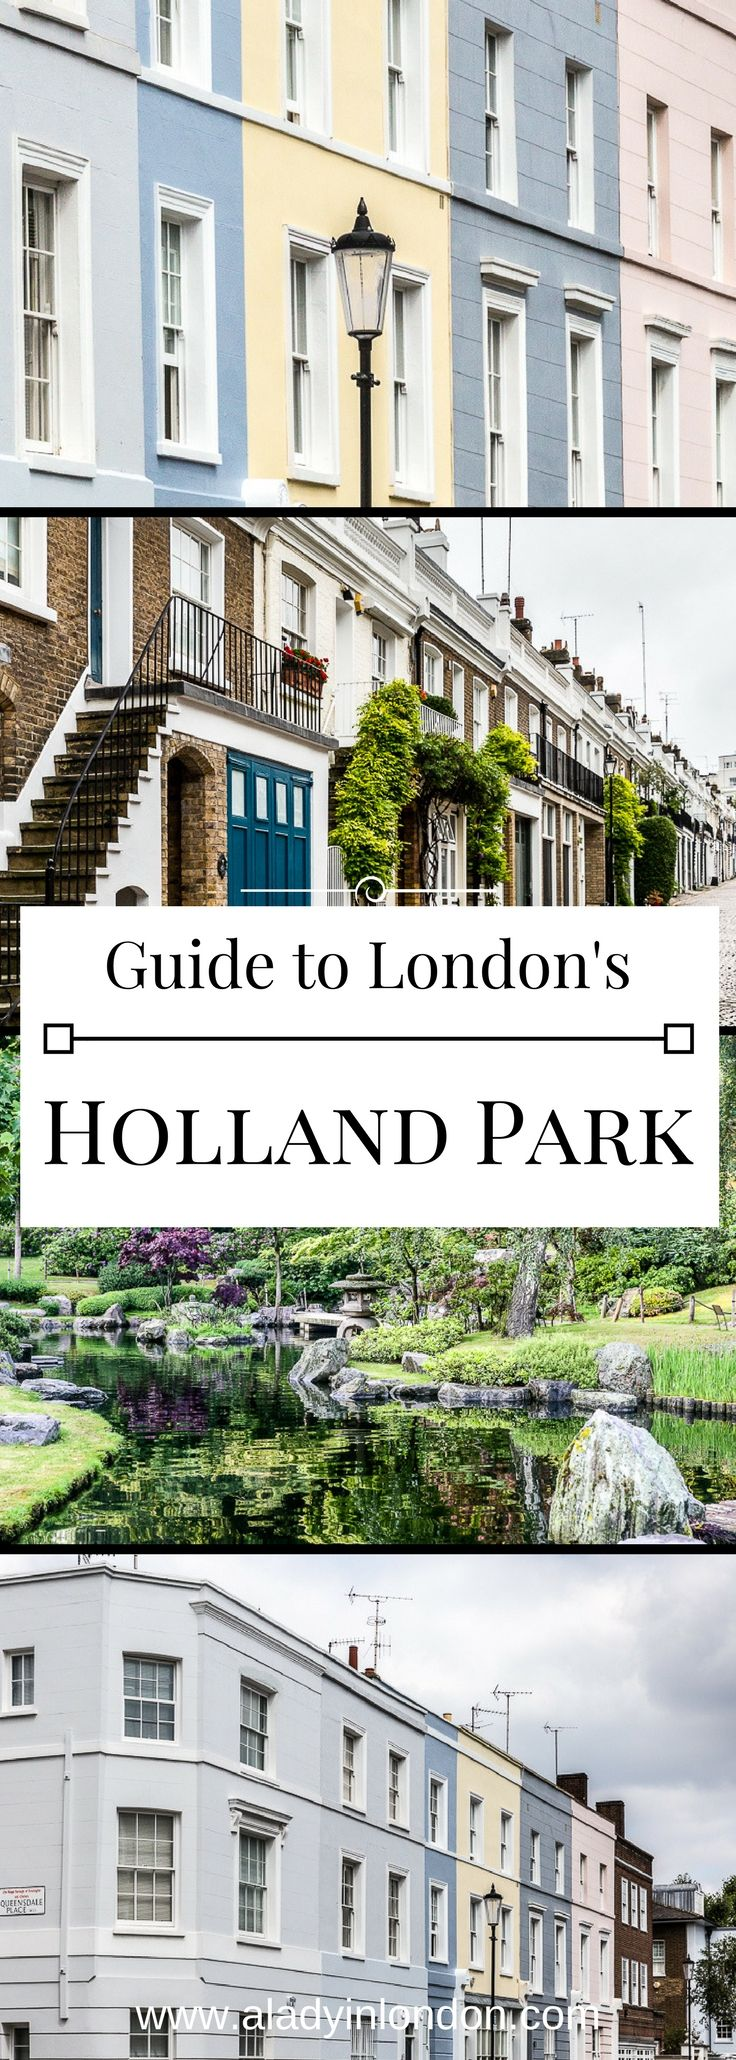 A lovely guide to Holland Park, London. From pretty streets to leafy parks, this is a neighborhood worth exploring.   #london #hollandpark